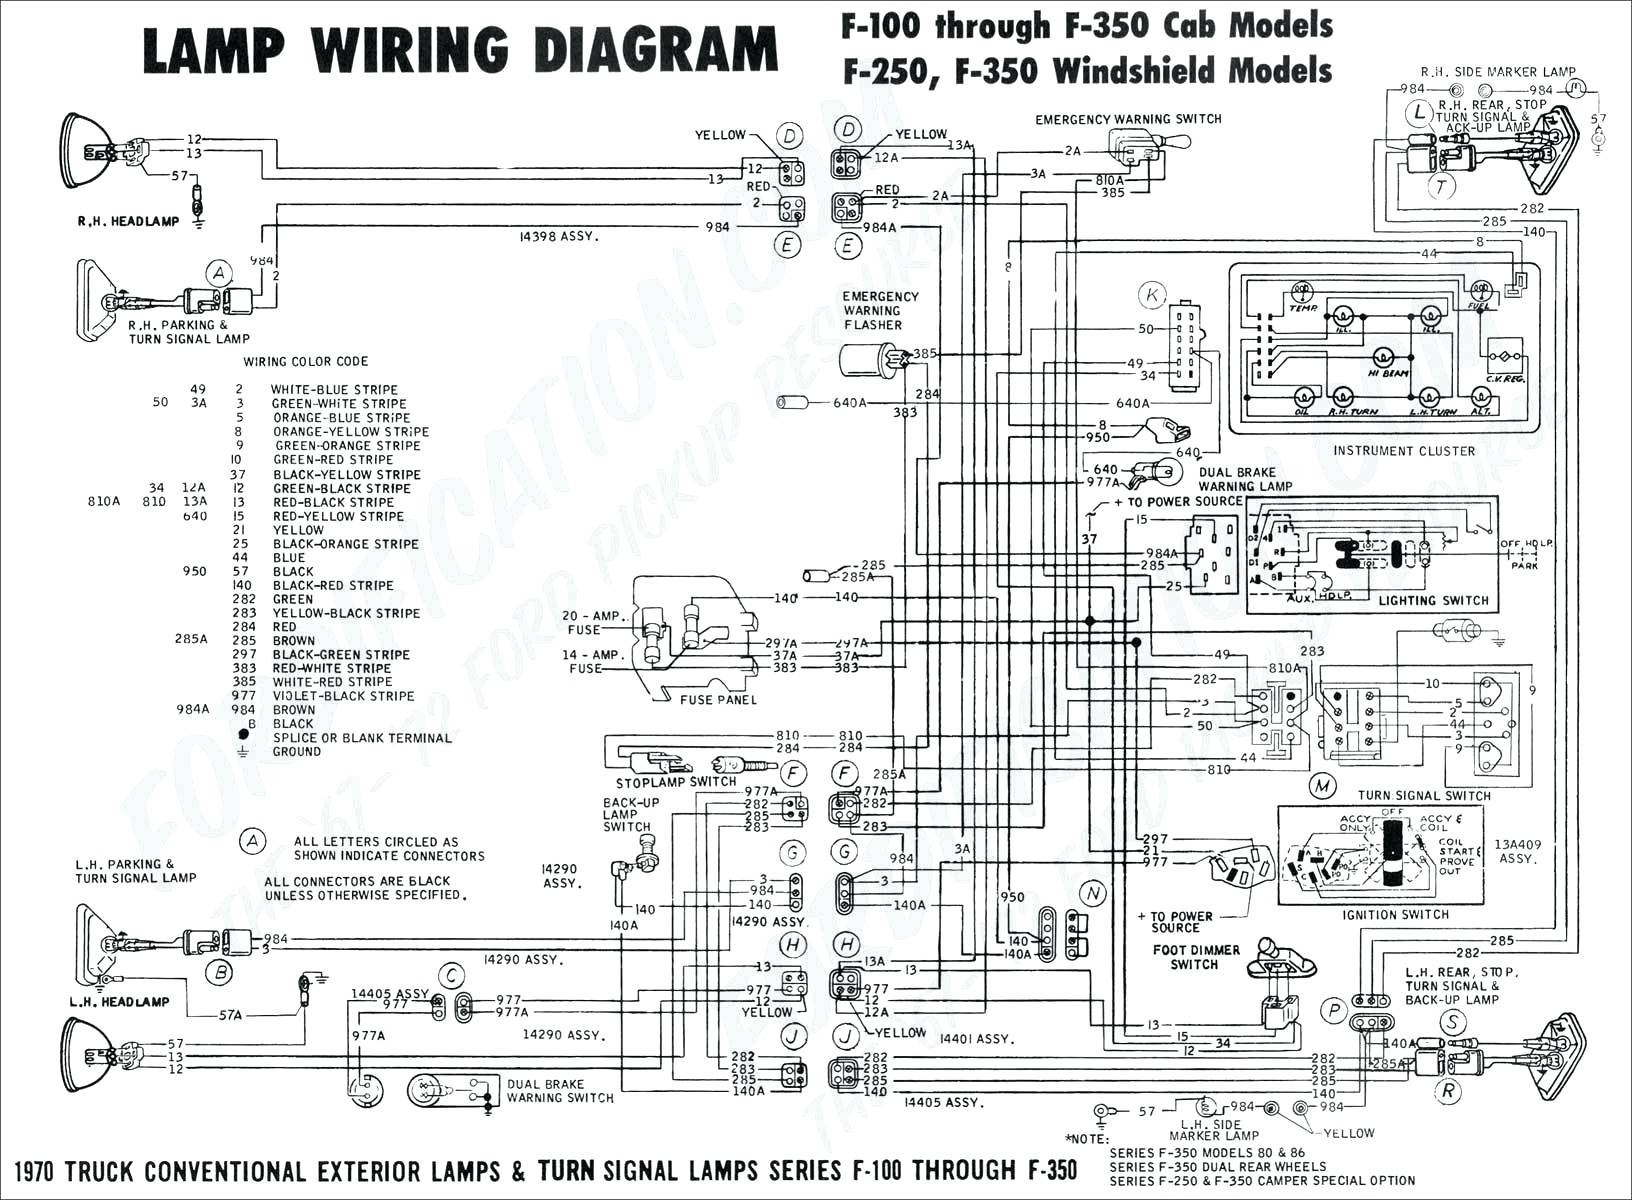 2001 Ford F350 Wiring Diagrams - Wiring Diagram - F250 Wiring Diagram Trailer